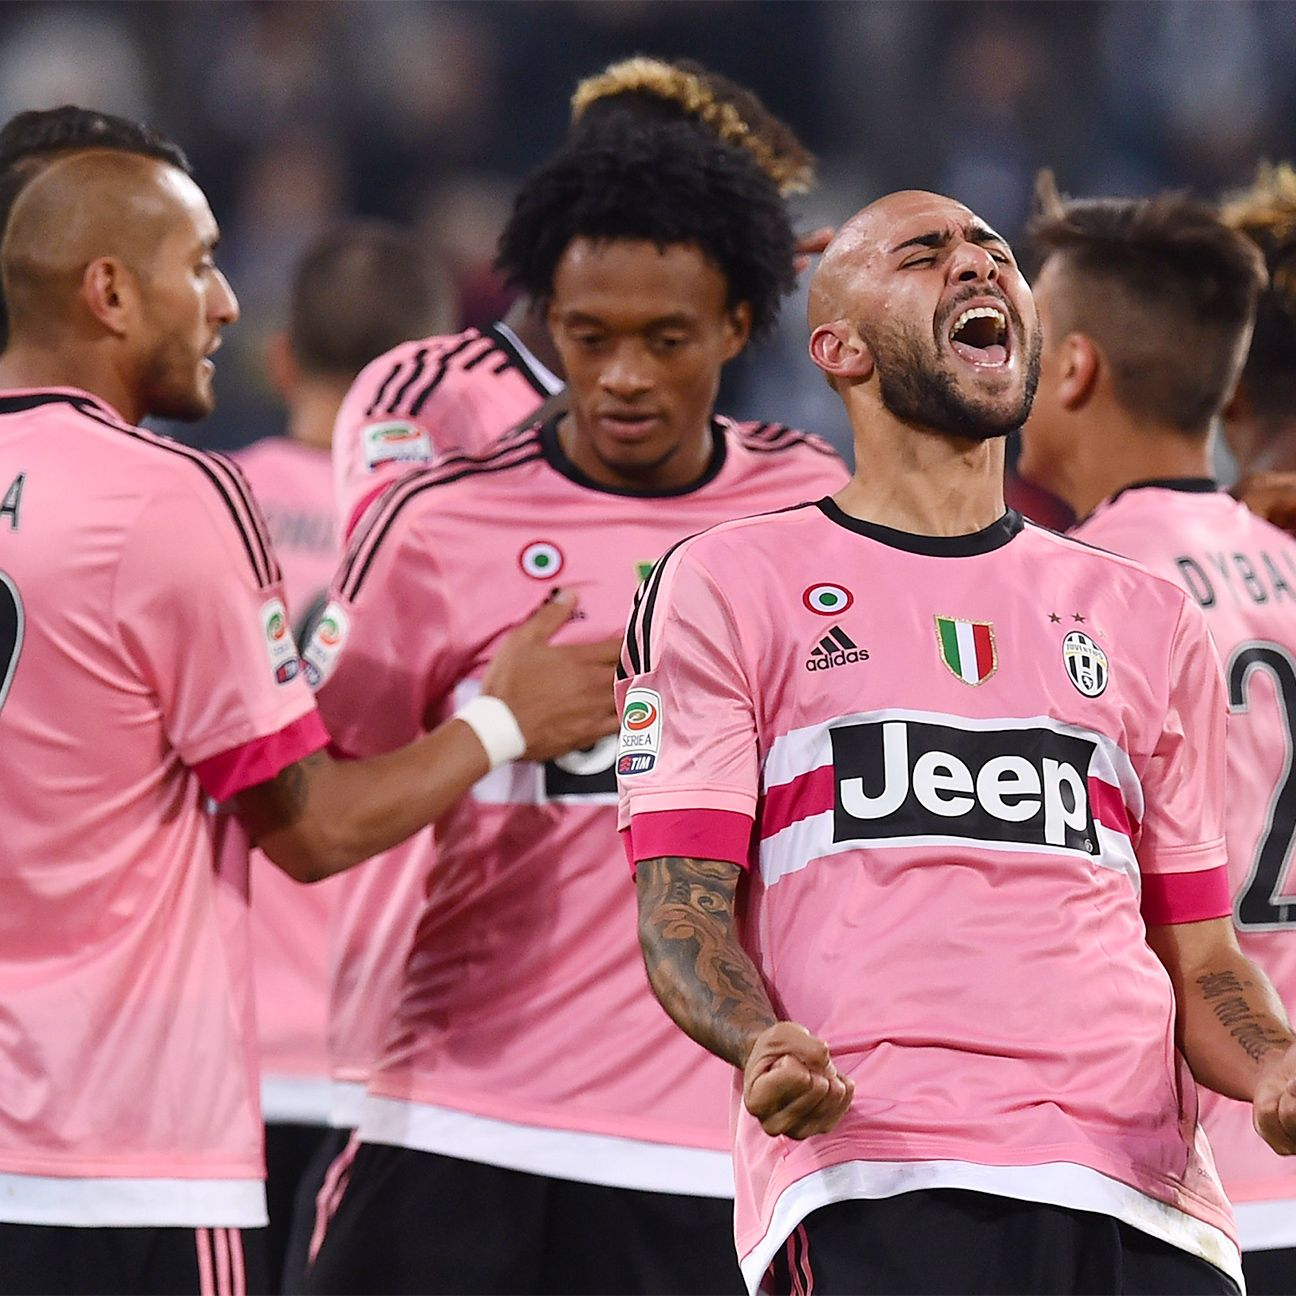 Juventus' young attacking players like Simone Zaza are full of potential, but their lack of experience has been a detriment this season.